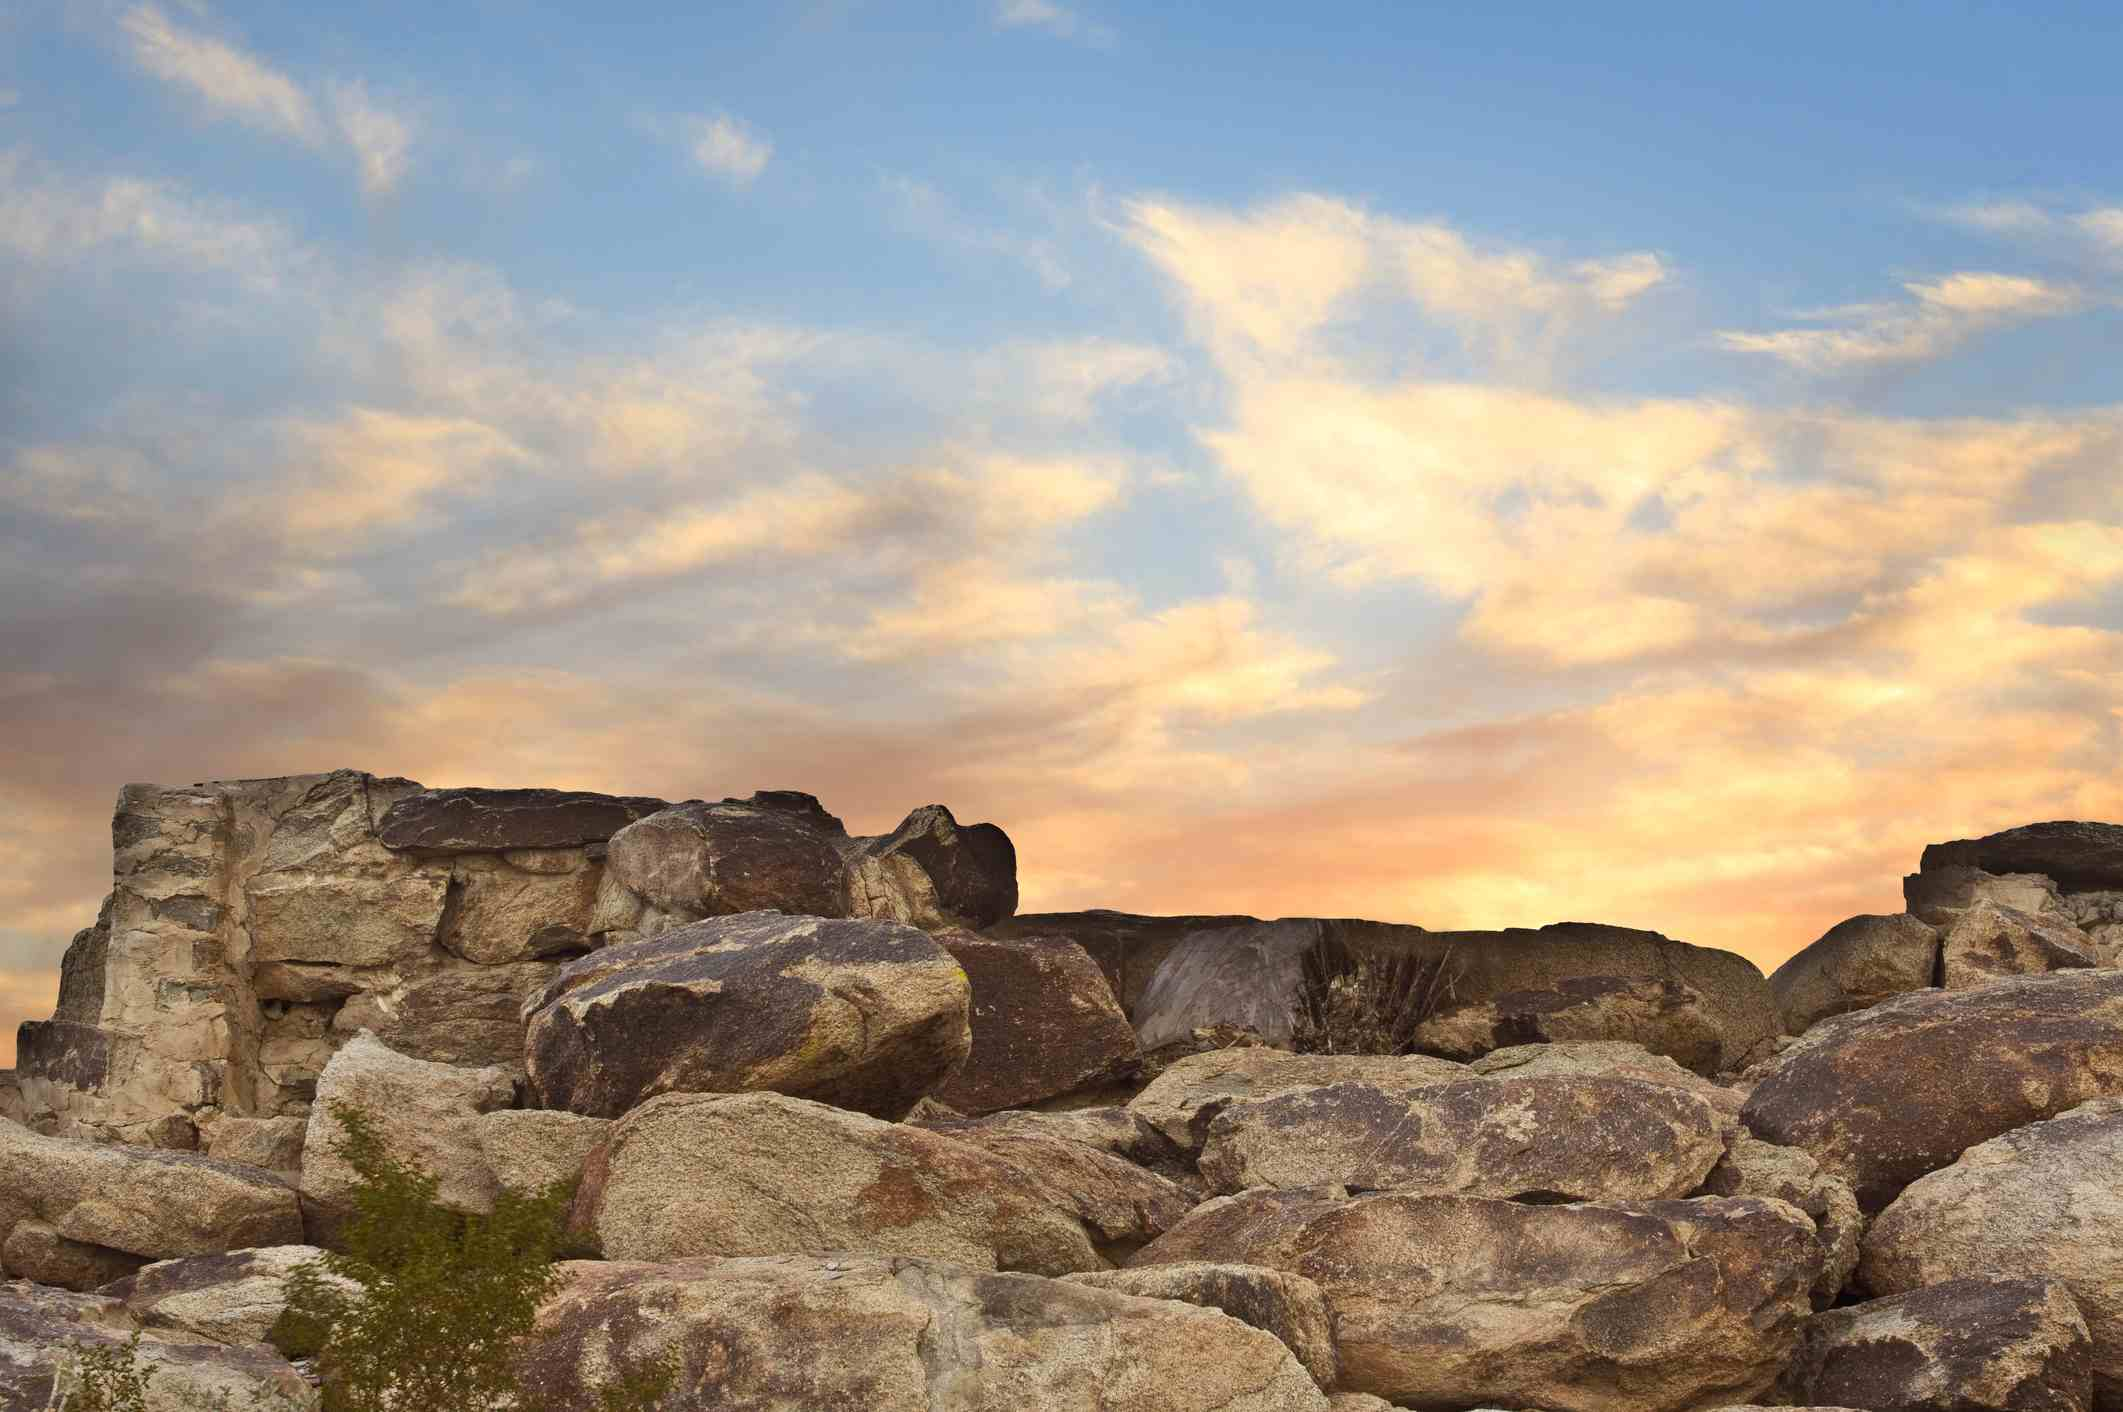 South Mountain Park landscape with Boulders and colorful sky